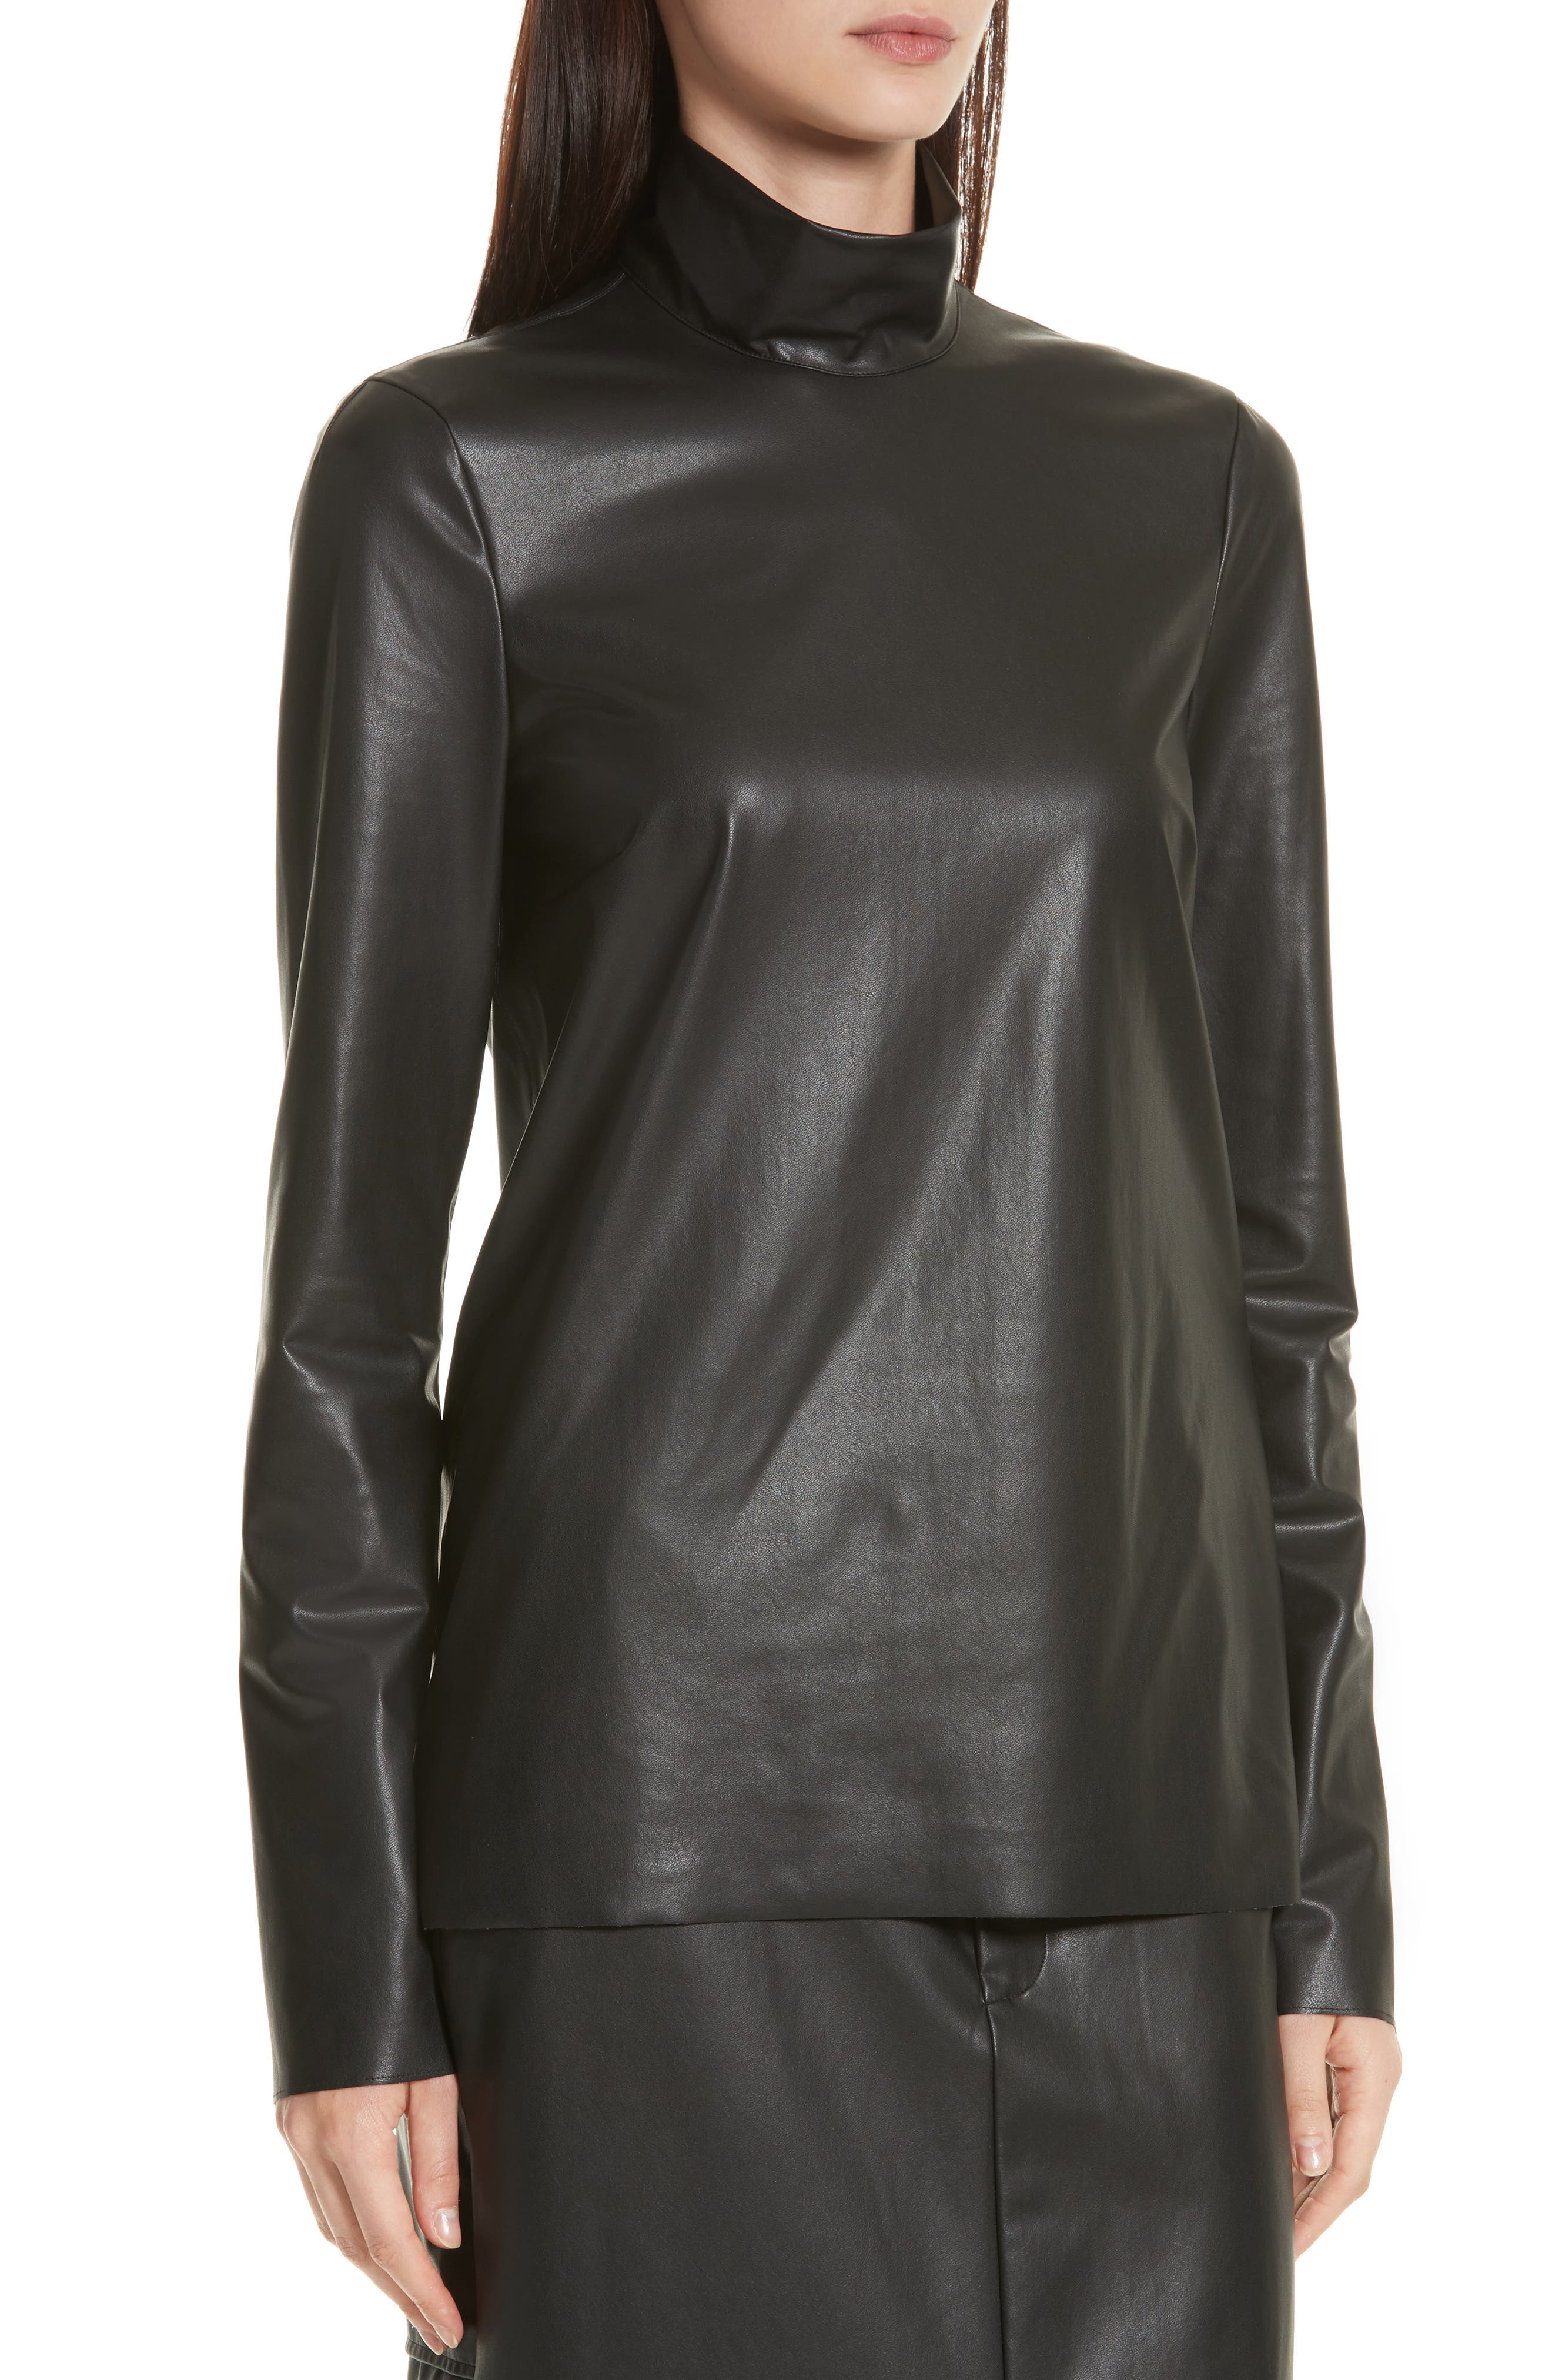 Vienna Feather Sky Faux Leather Top,                             Alternate thumbnail 4, color,